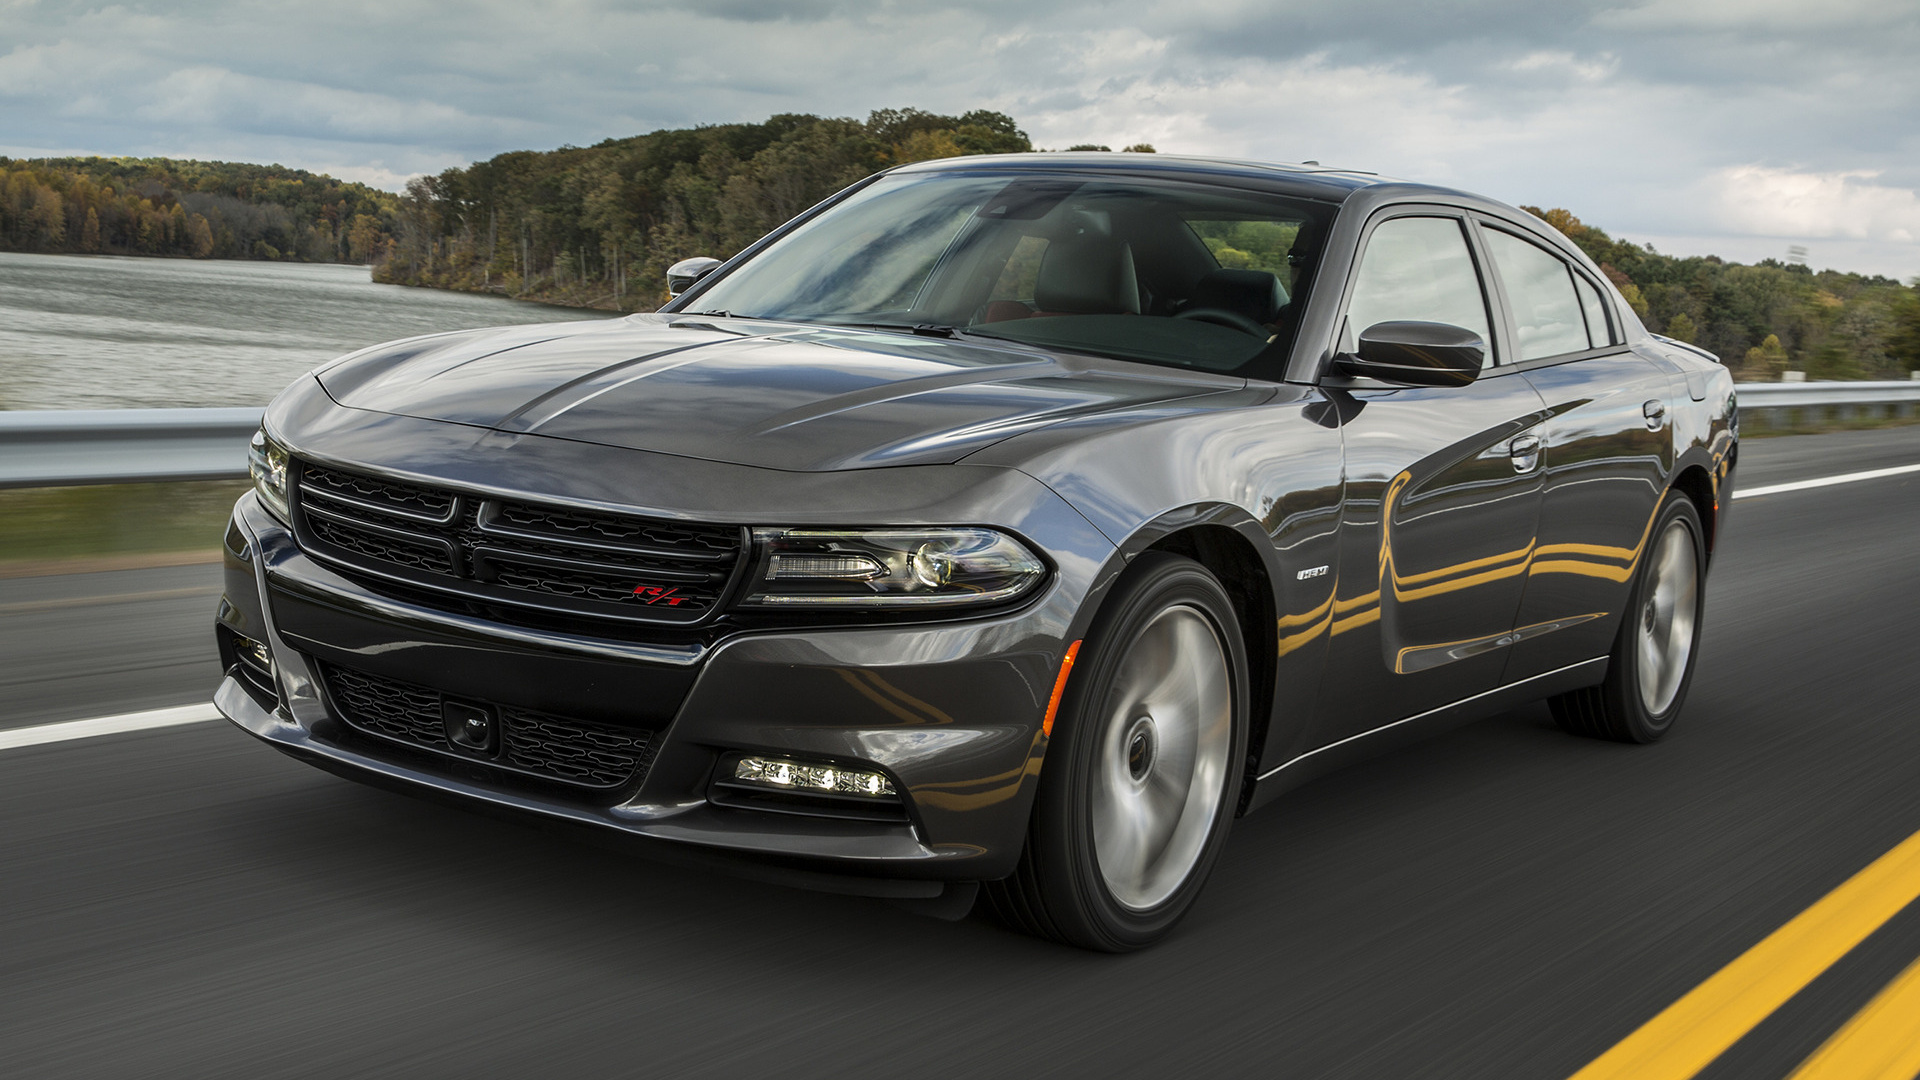 Dodge Charger R/T Road & Track (2015) Wallpapers and HD ...